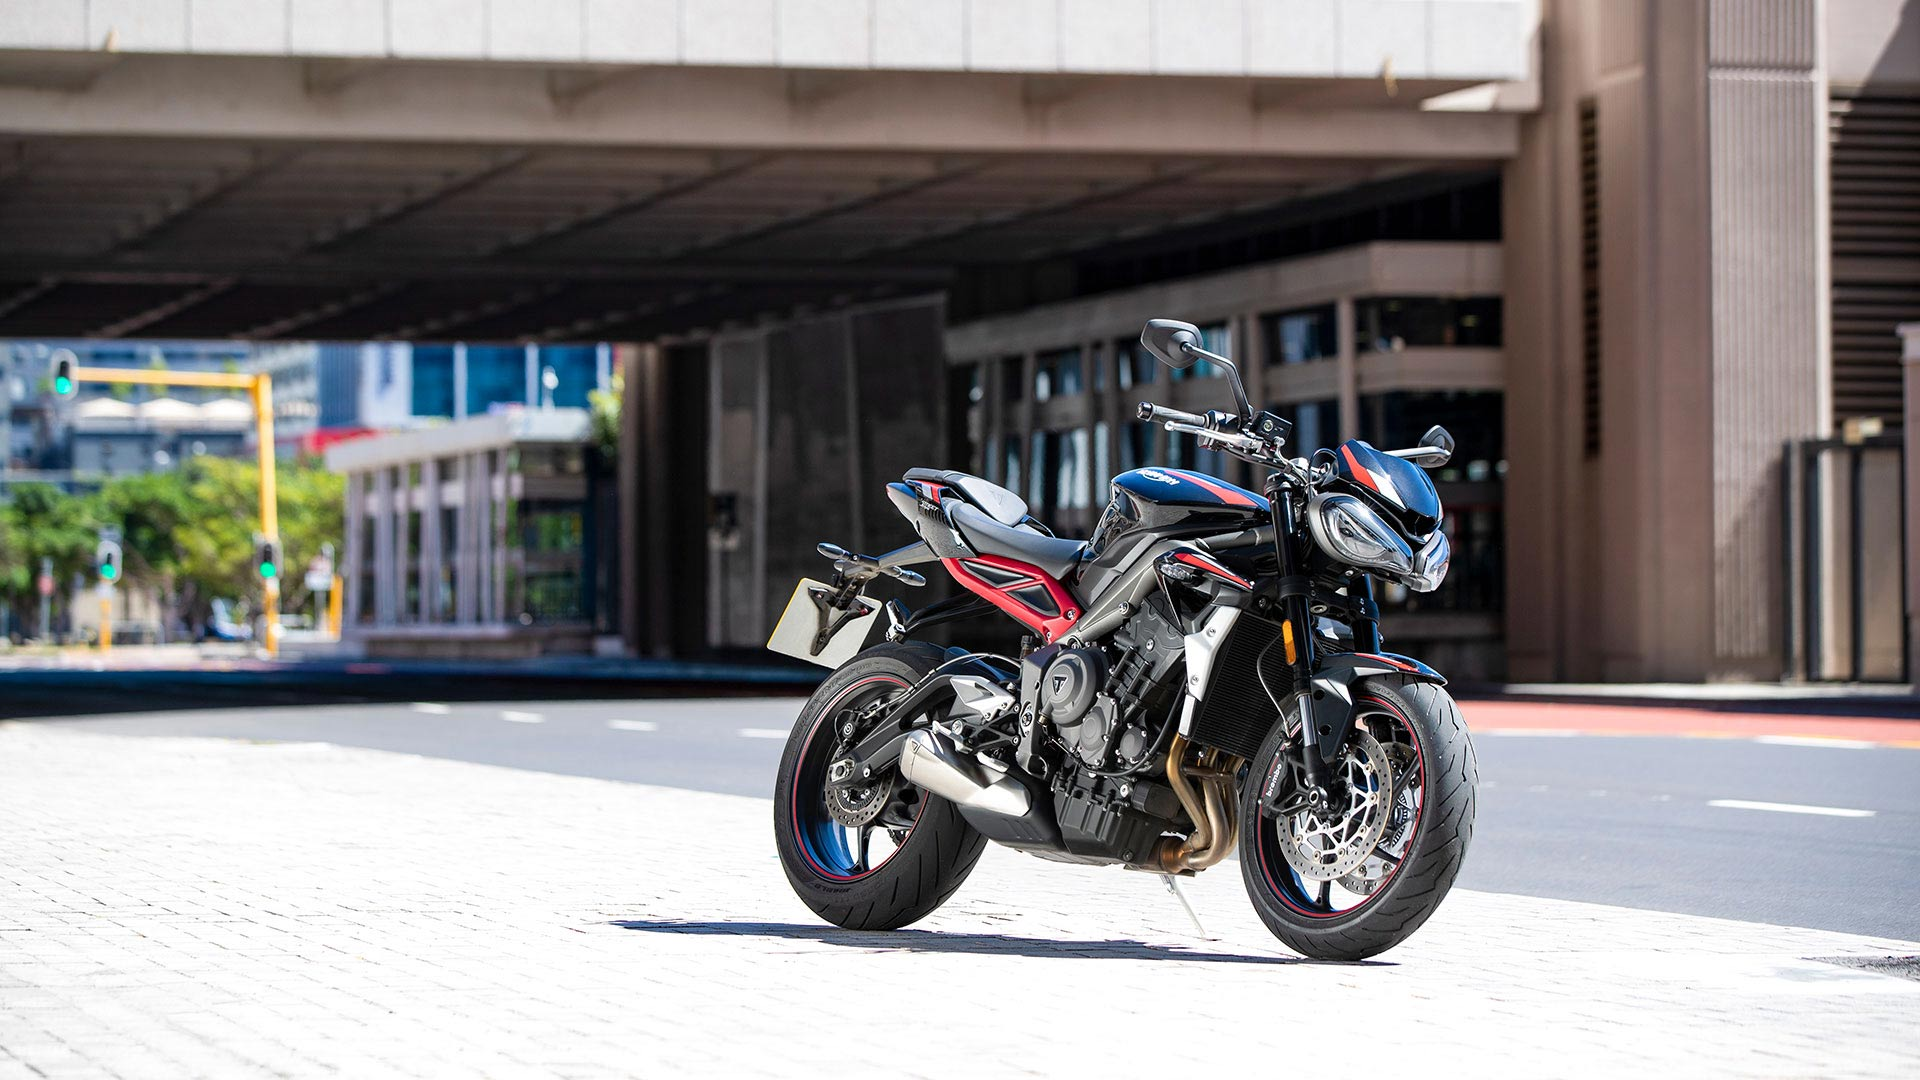 Street-Triple-R-Variant-Page---Gallery-3-1920x1080px